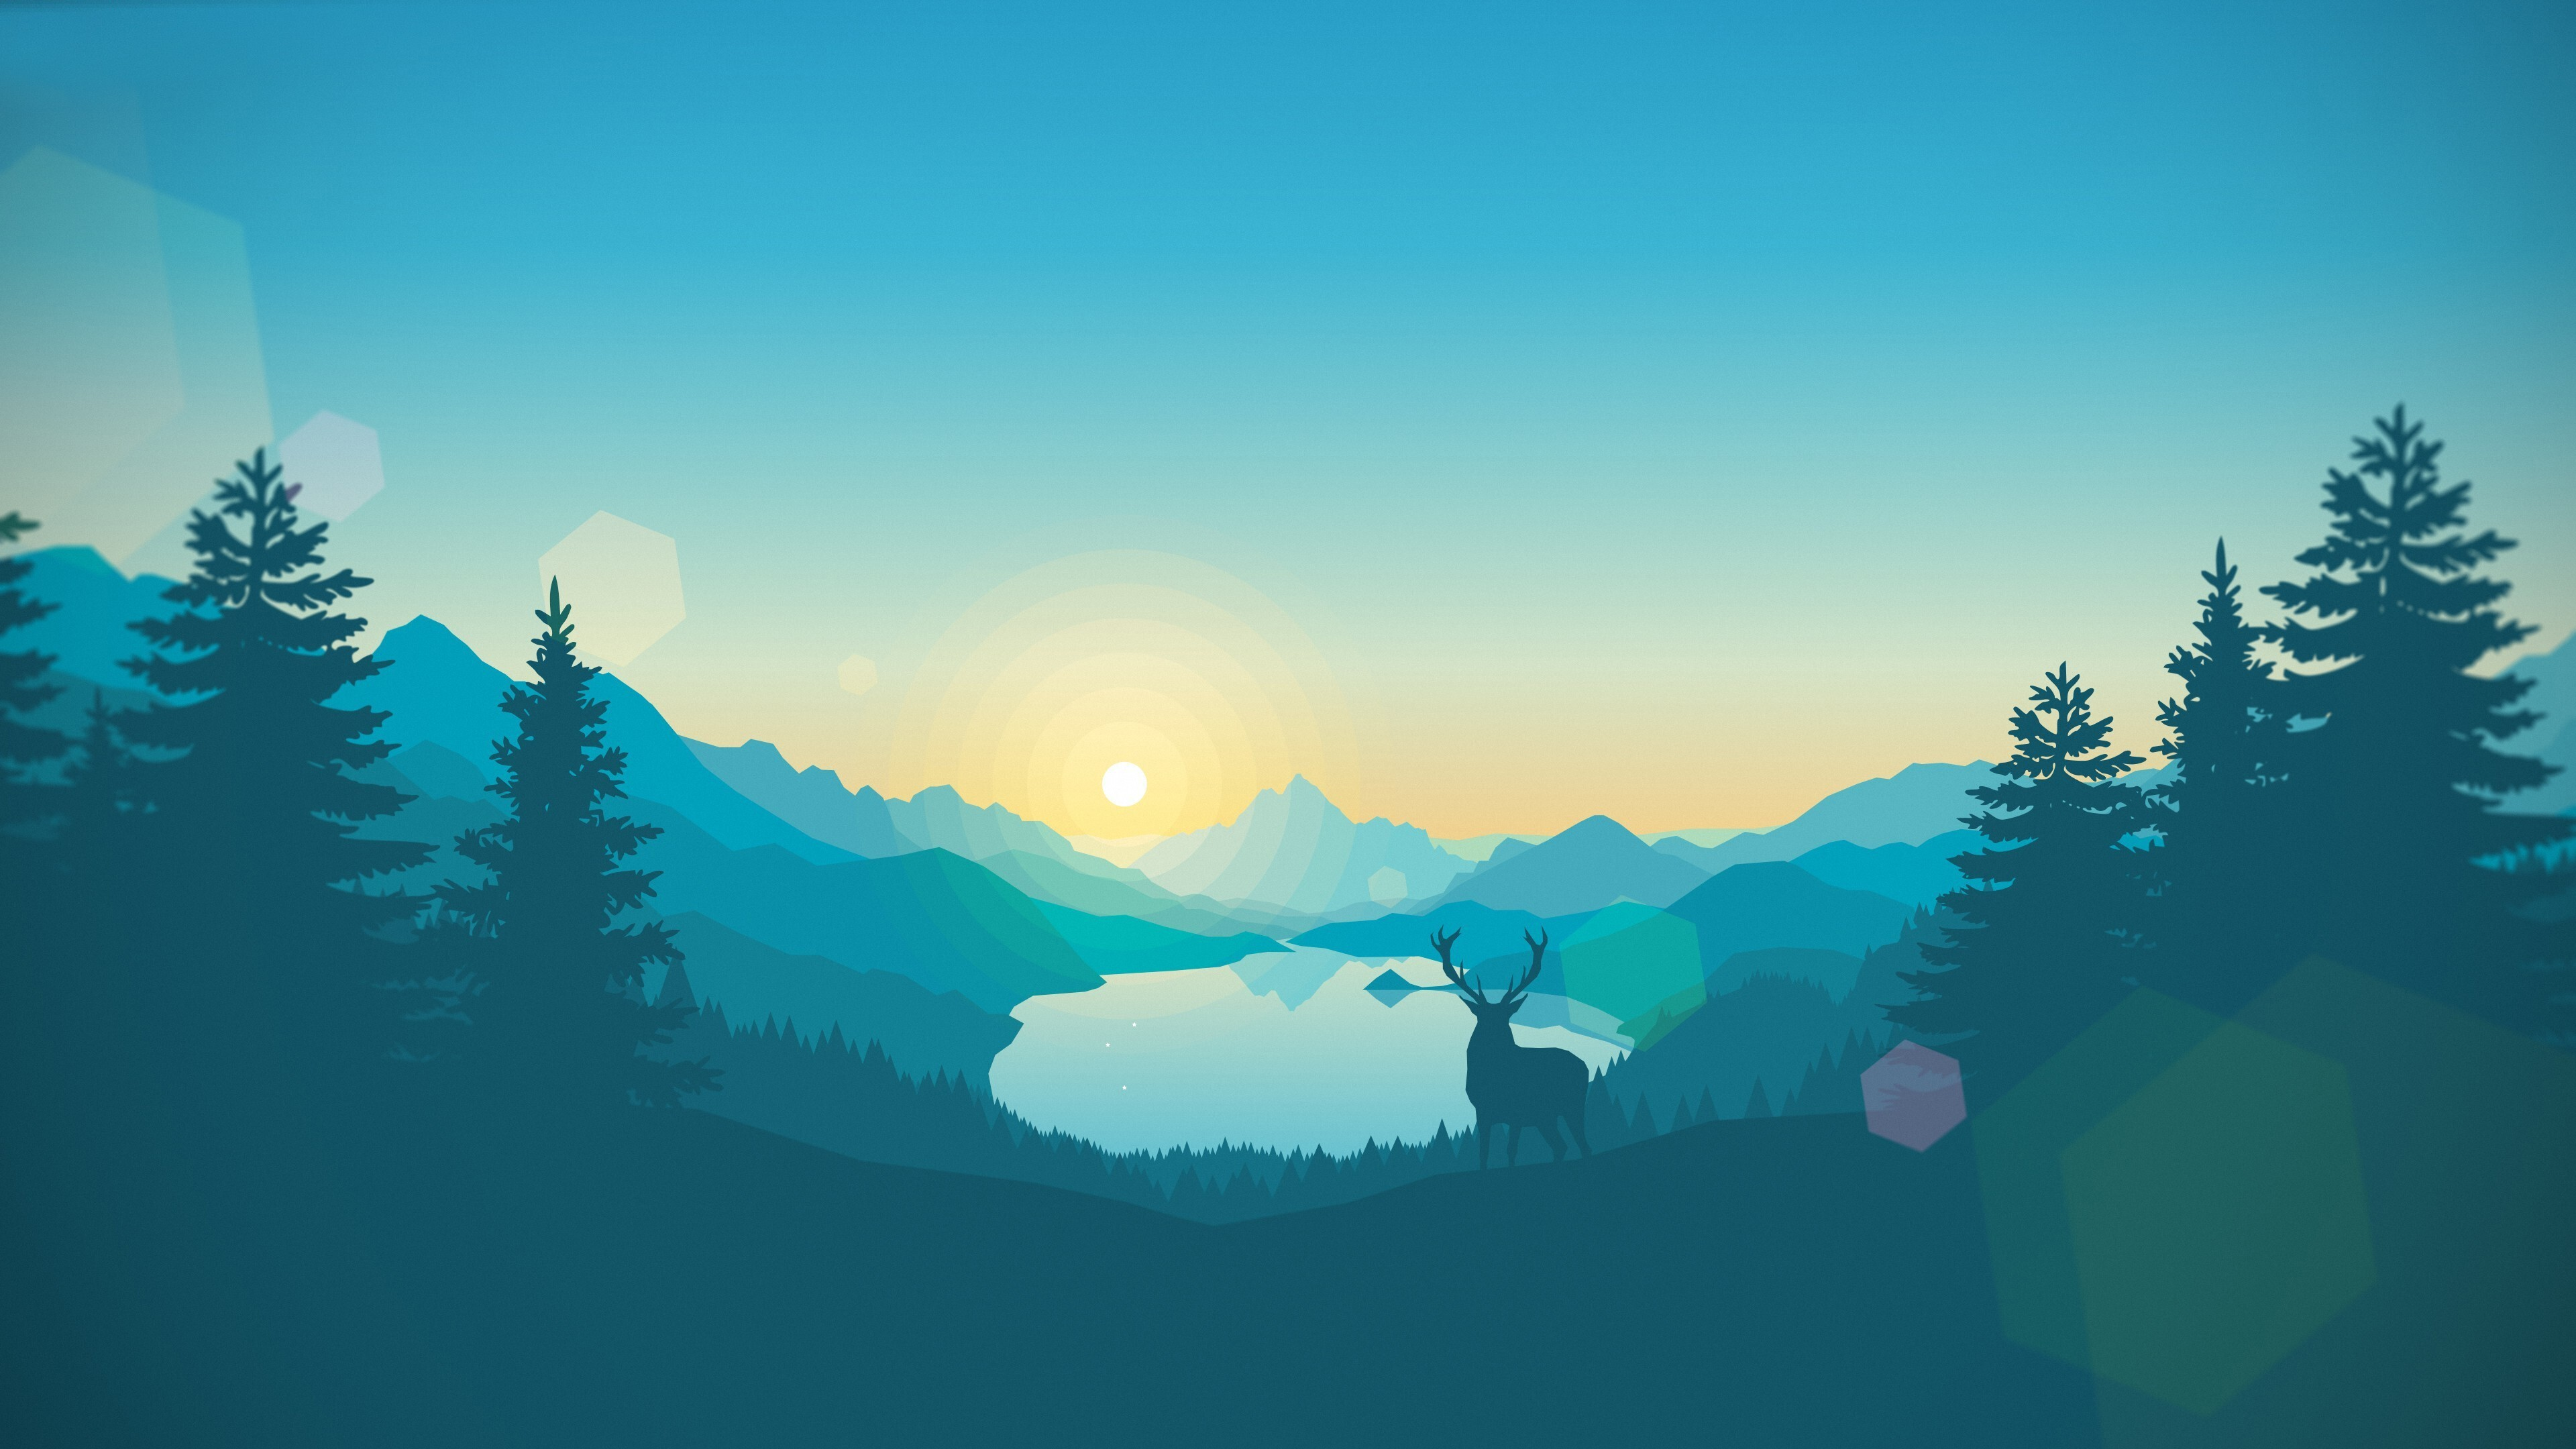 3840x2160 Firewatch Game Graphics 4k HD 4k Wallpapers ...